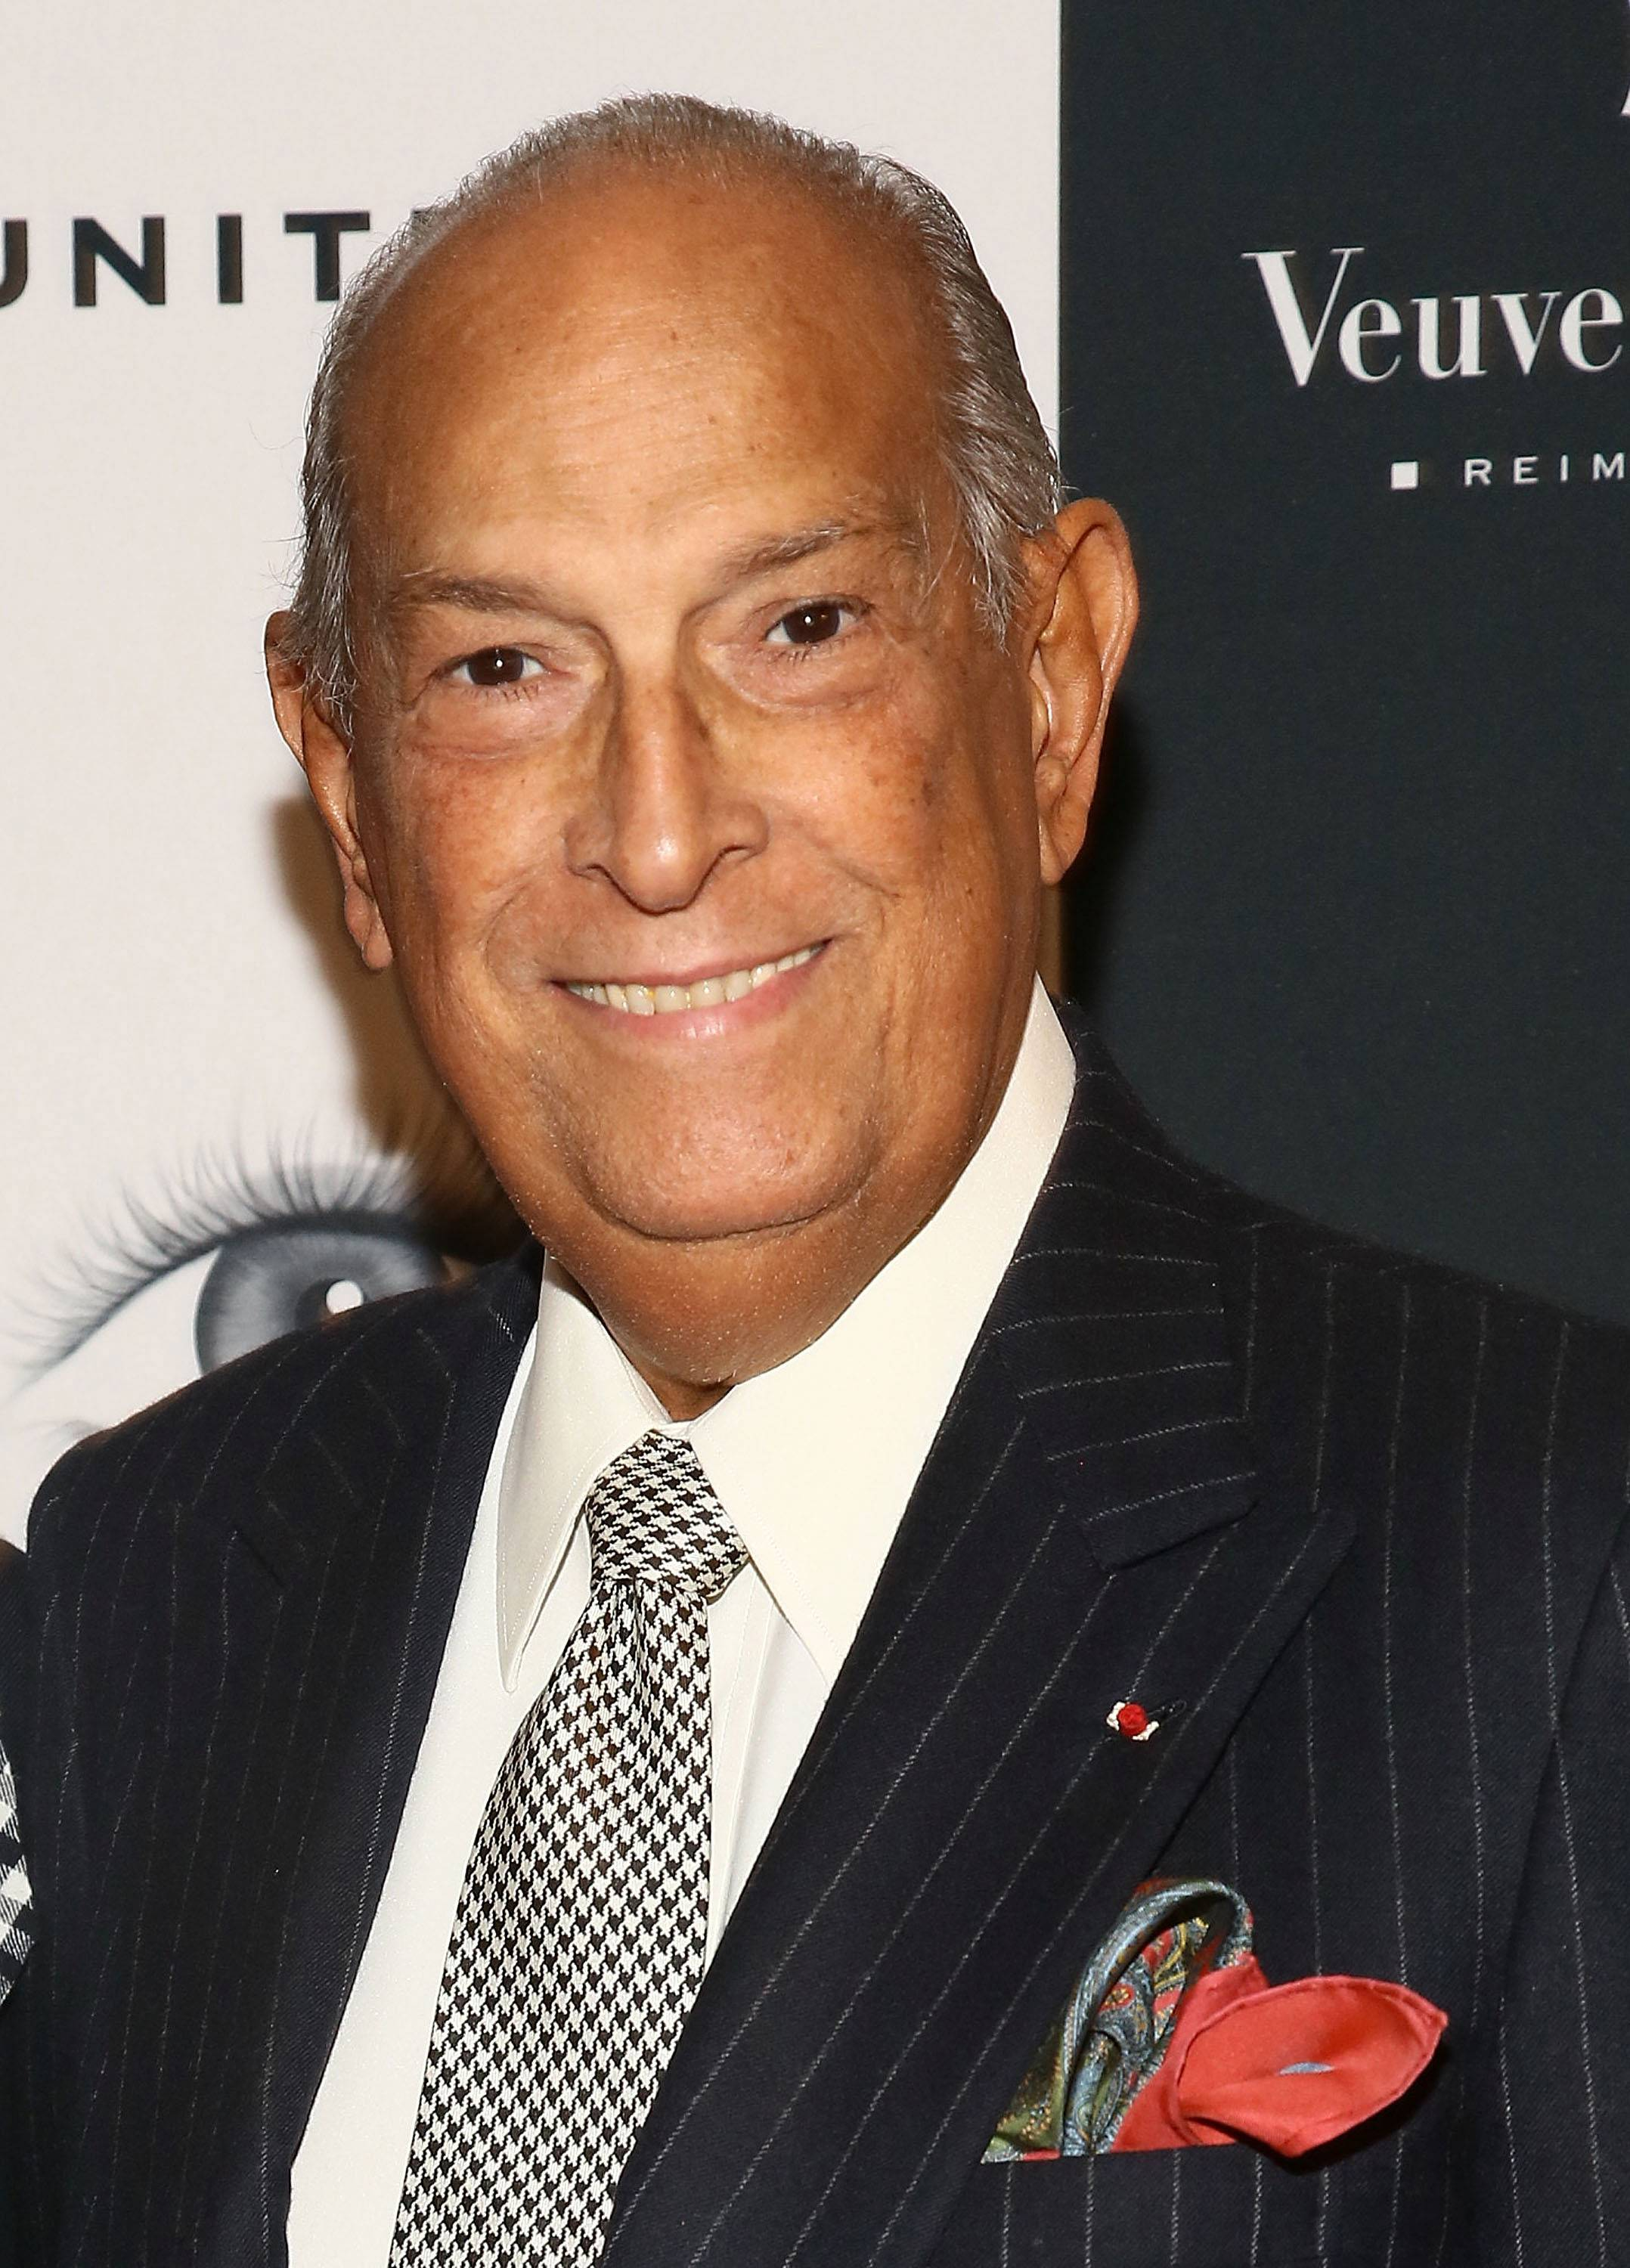 Rest in Peace, Mr. de la Renta - Oscar de la Renta, one of the world's most iconic fashion designers, has passed away at 82. Rest in peace.  (Photo: Astrid Stawiarz/Getty Images)